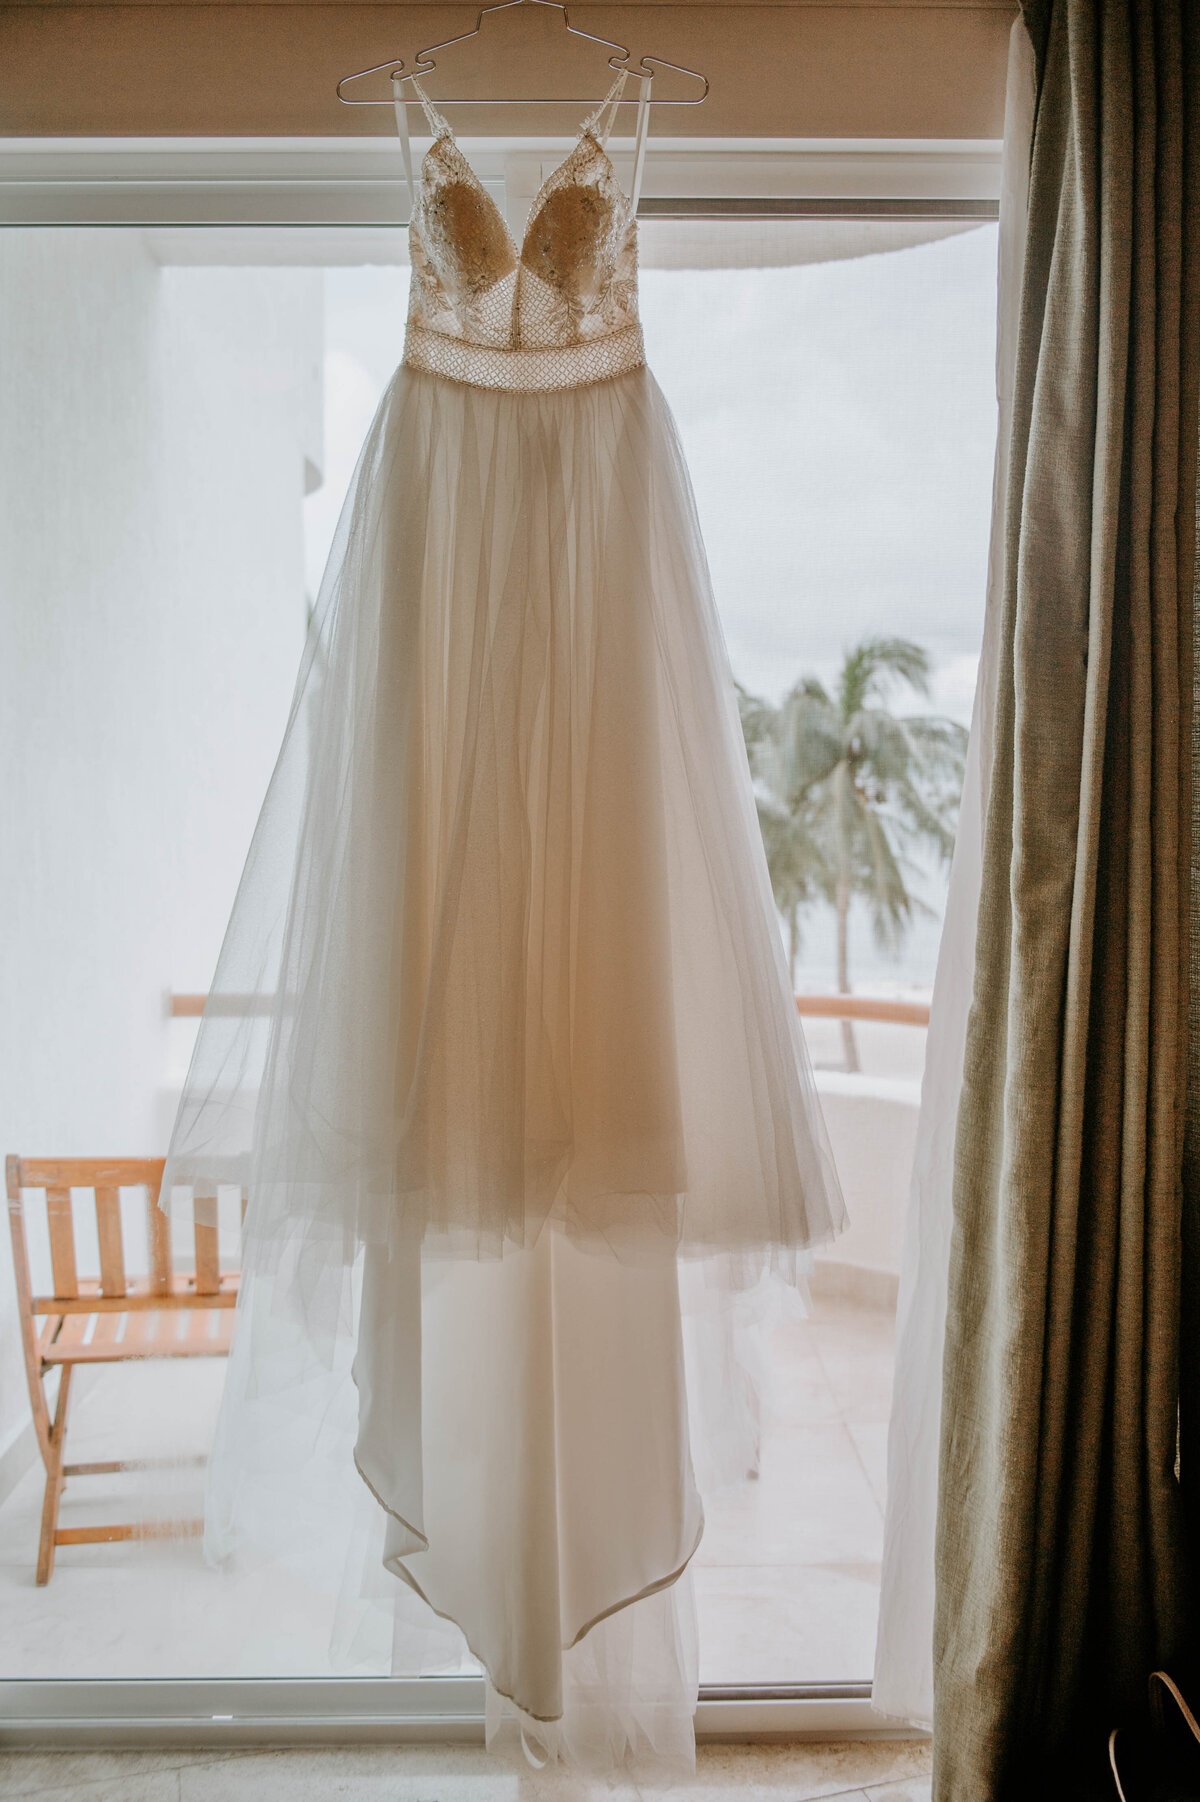 isla-mujeres-wedding-photographer-guthrie-zama-mexico-tulum-cancun-beach-destination-0579